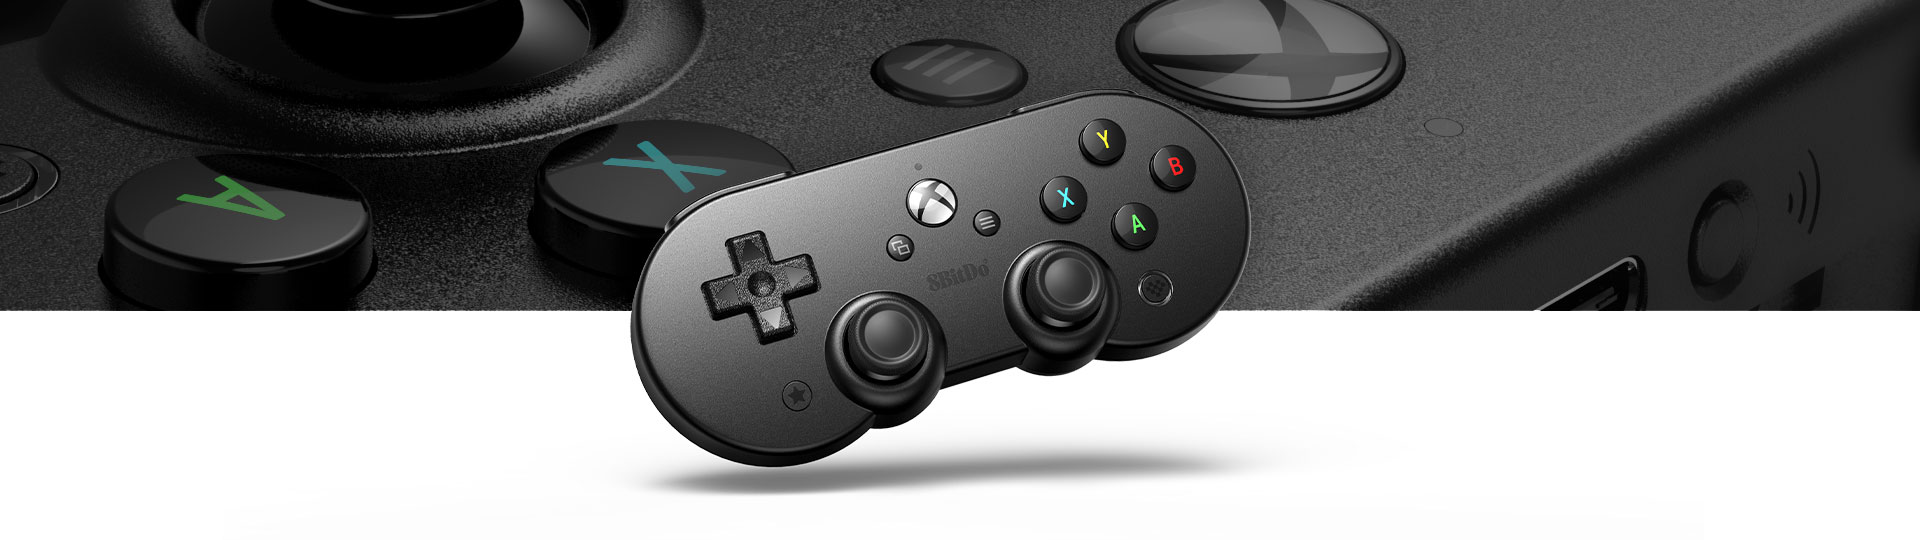 SN30 Pro with a close-up of controller surface texture